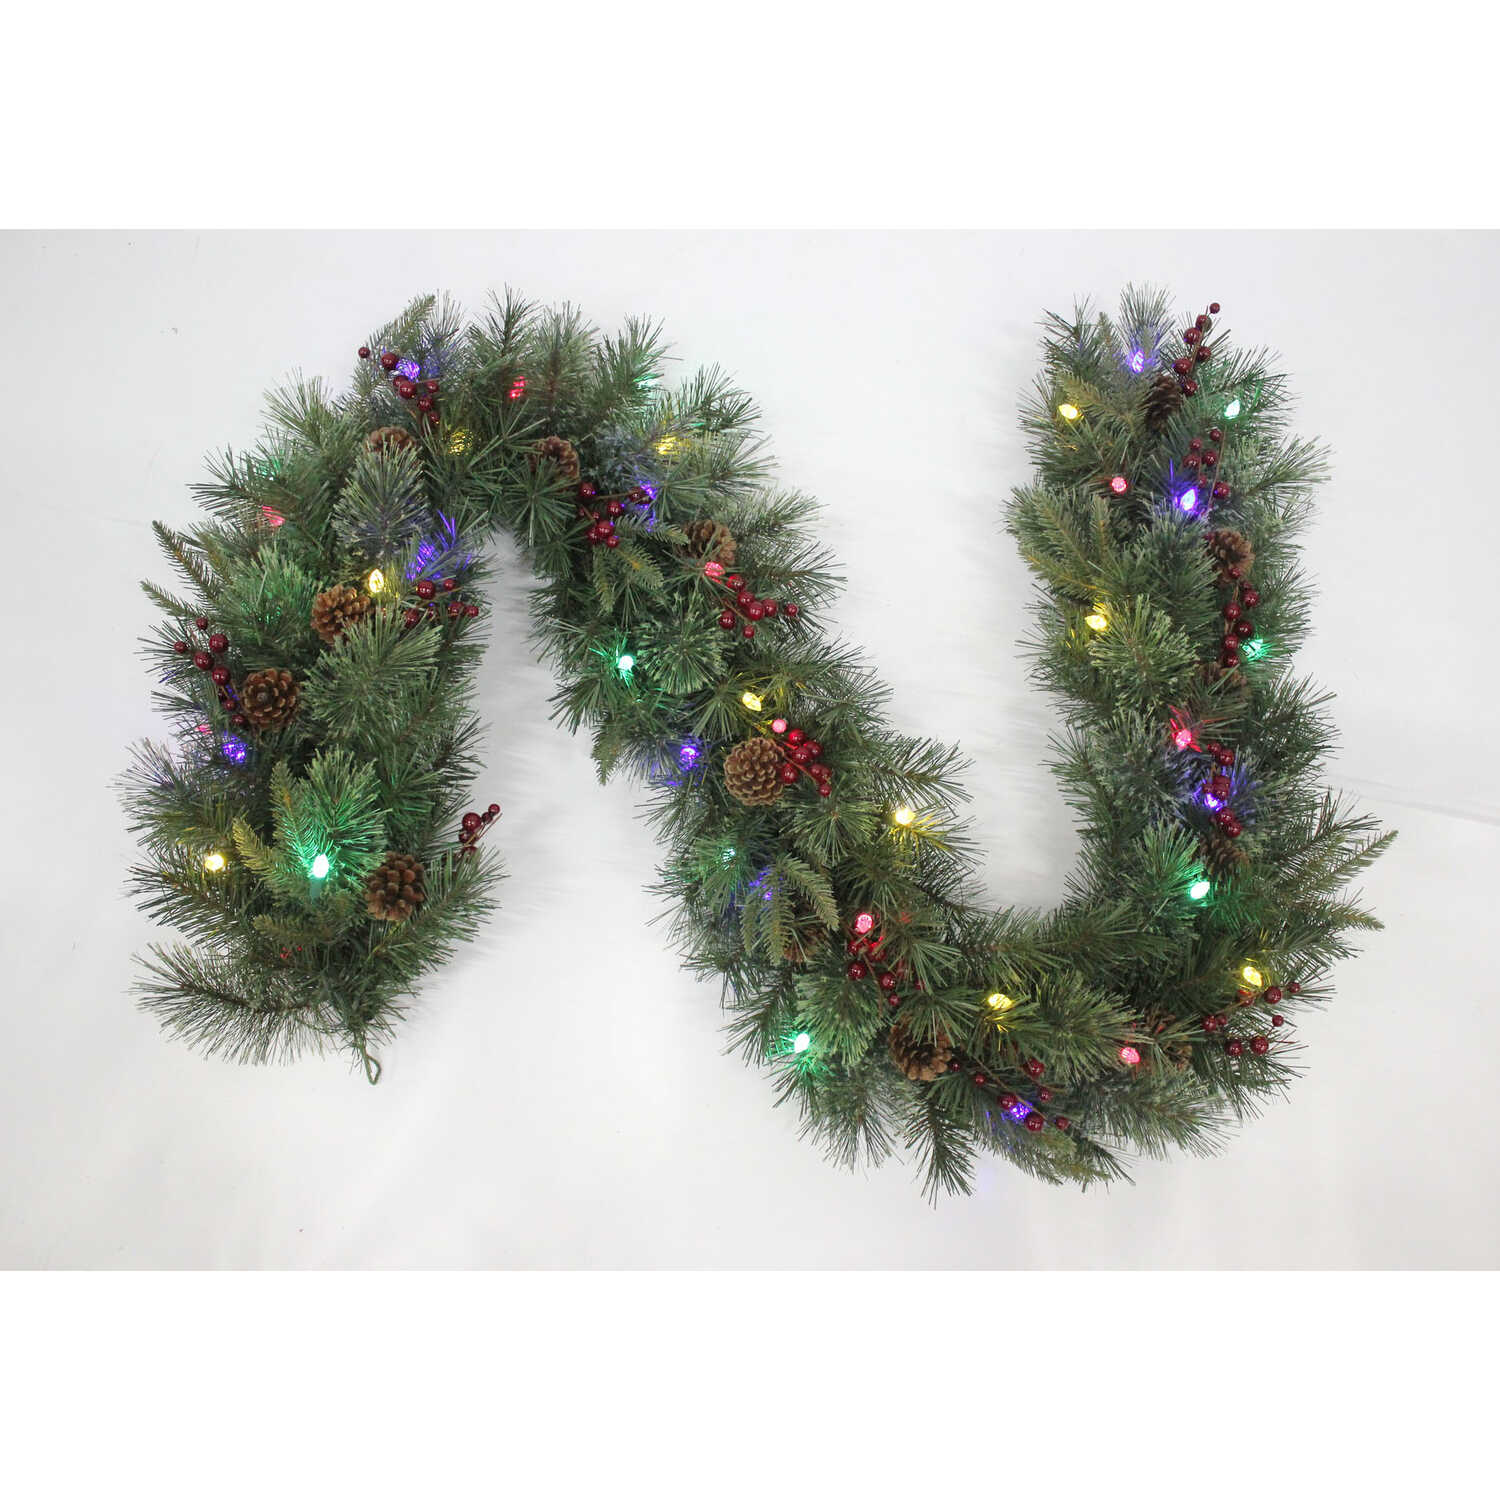 J & J Seasonal  Prelit Green  Hyde Park Garland  12 in. Dia. x 6 ft. L Multicolored